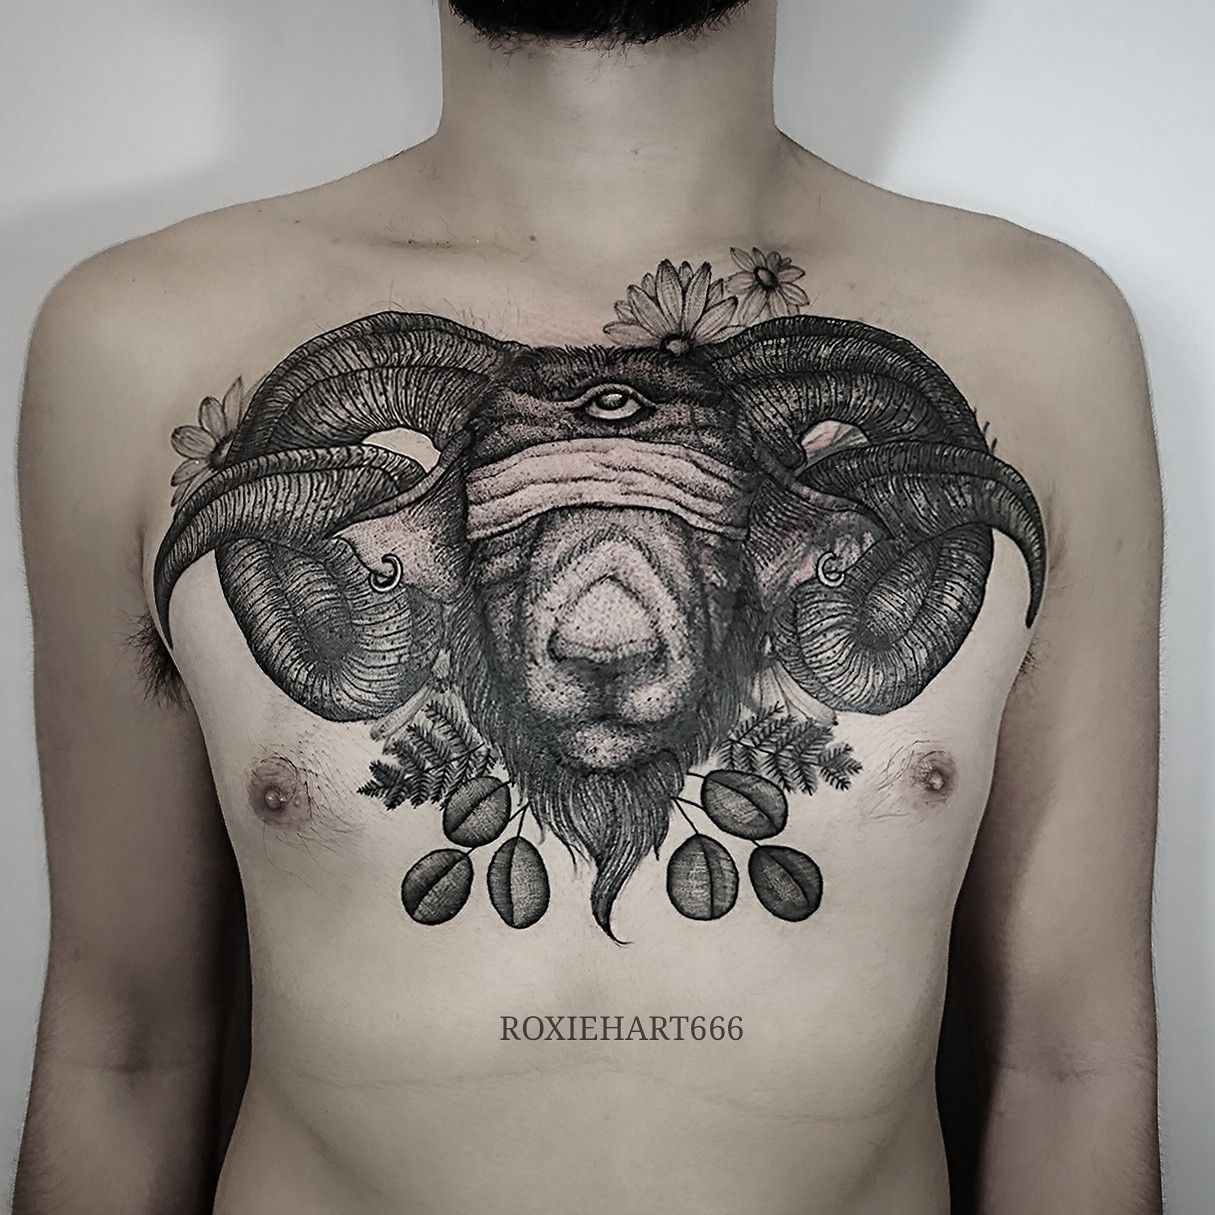 20+ Amazing Good cover up tattoos on chest image HD